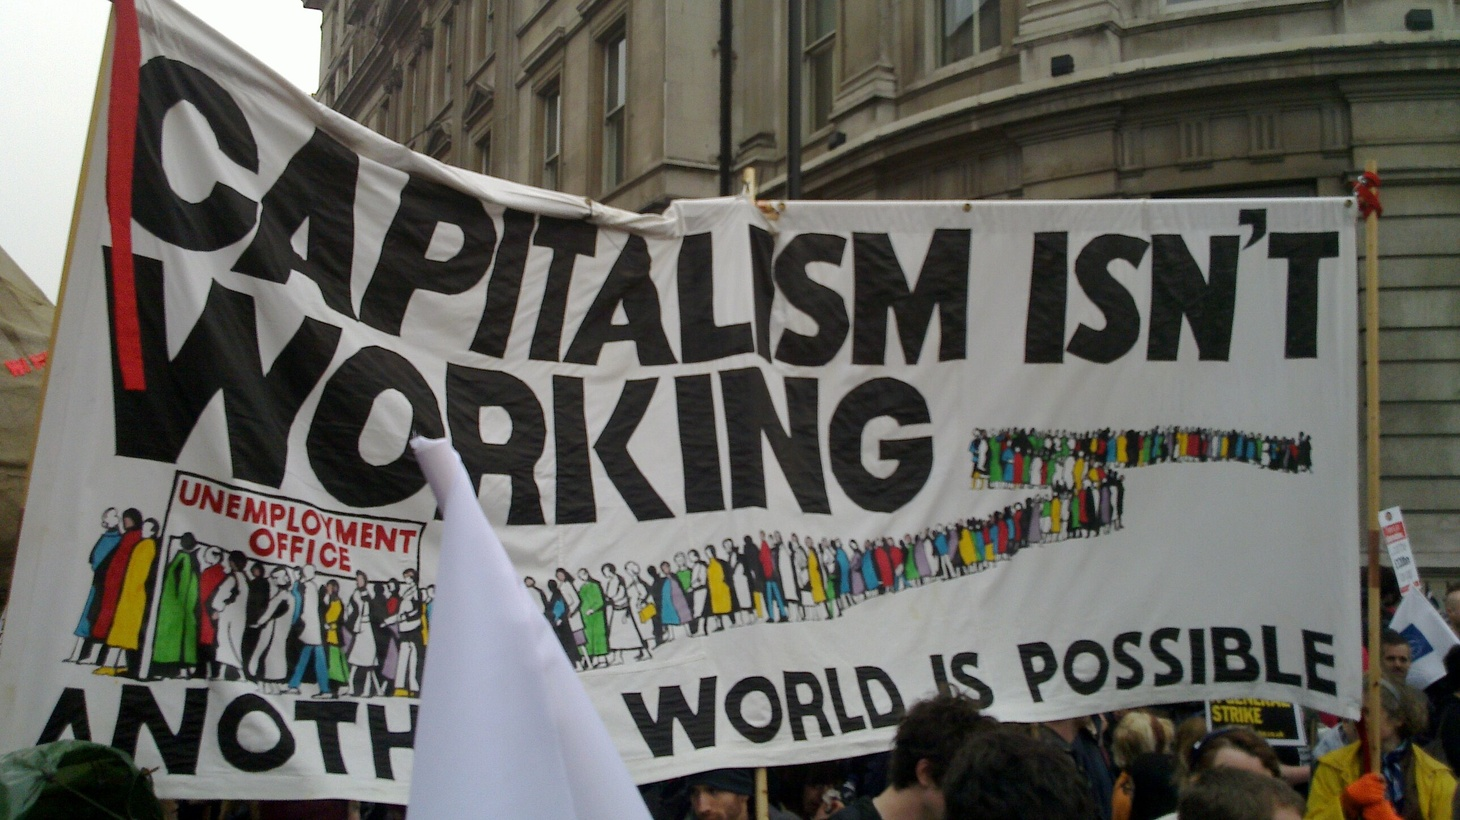 March for the Alternative, London, UK.